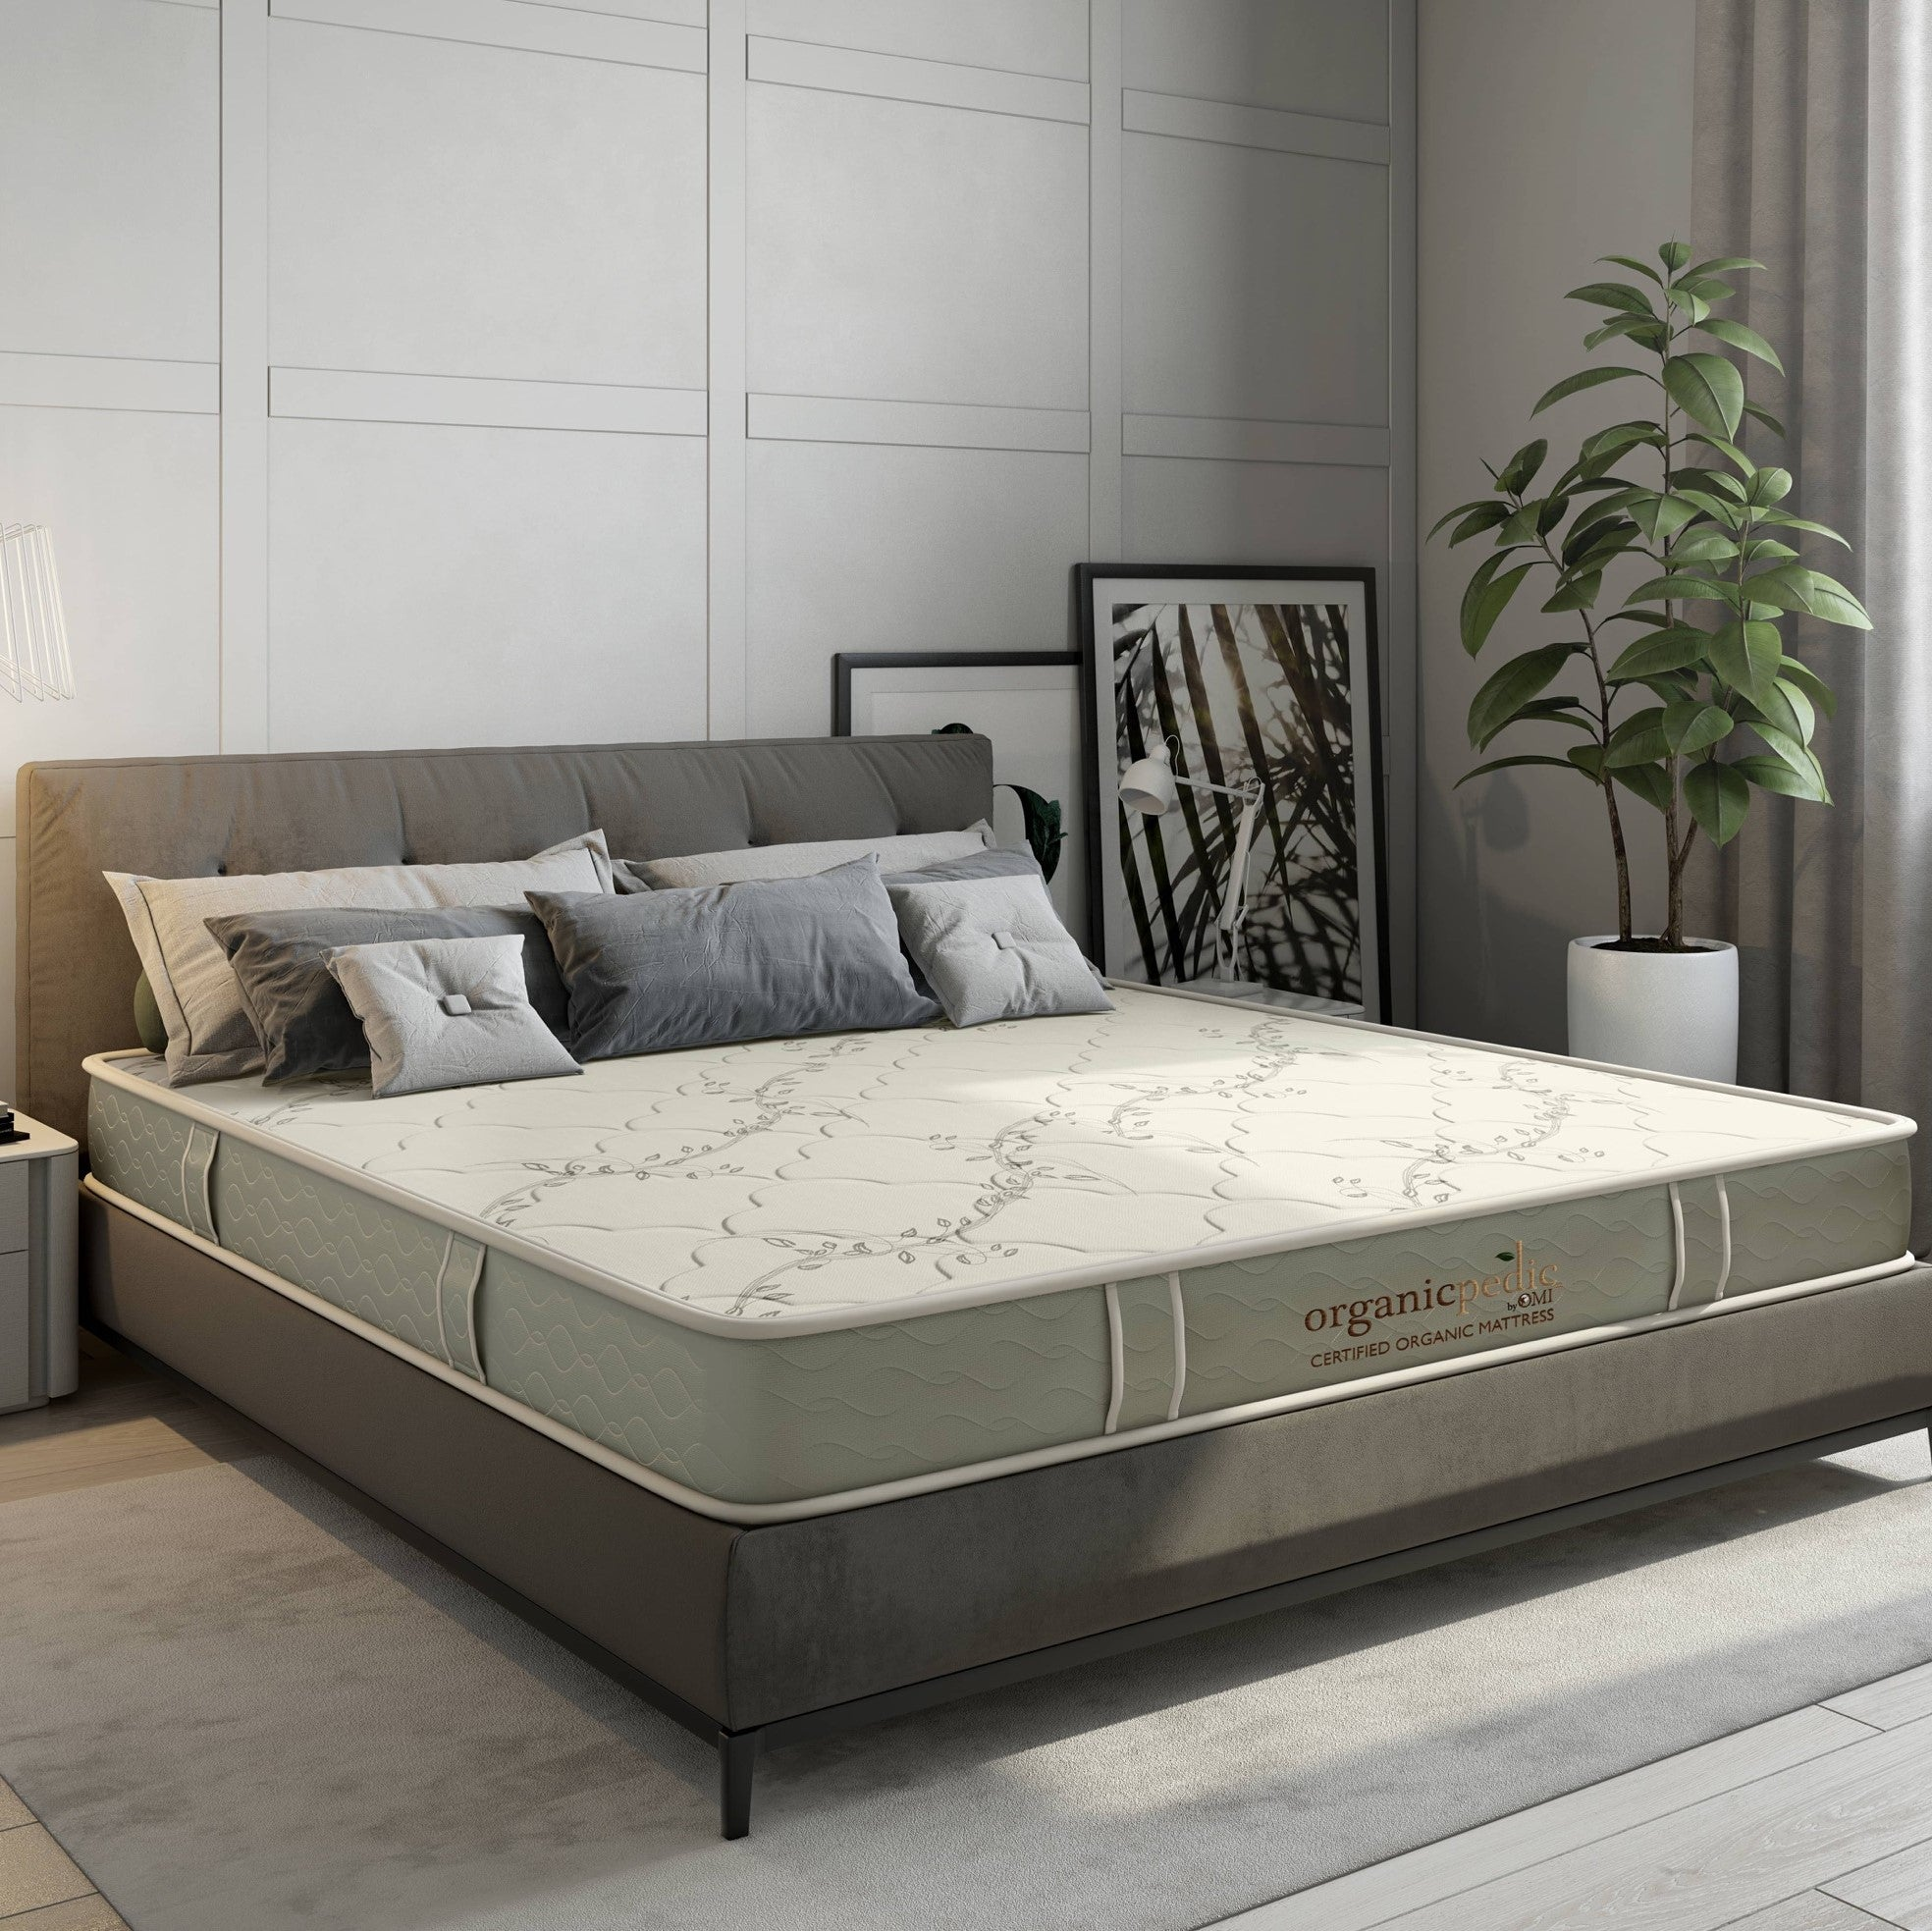 OMI CASCADE - Certified Organic Mattress